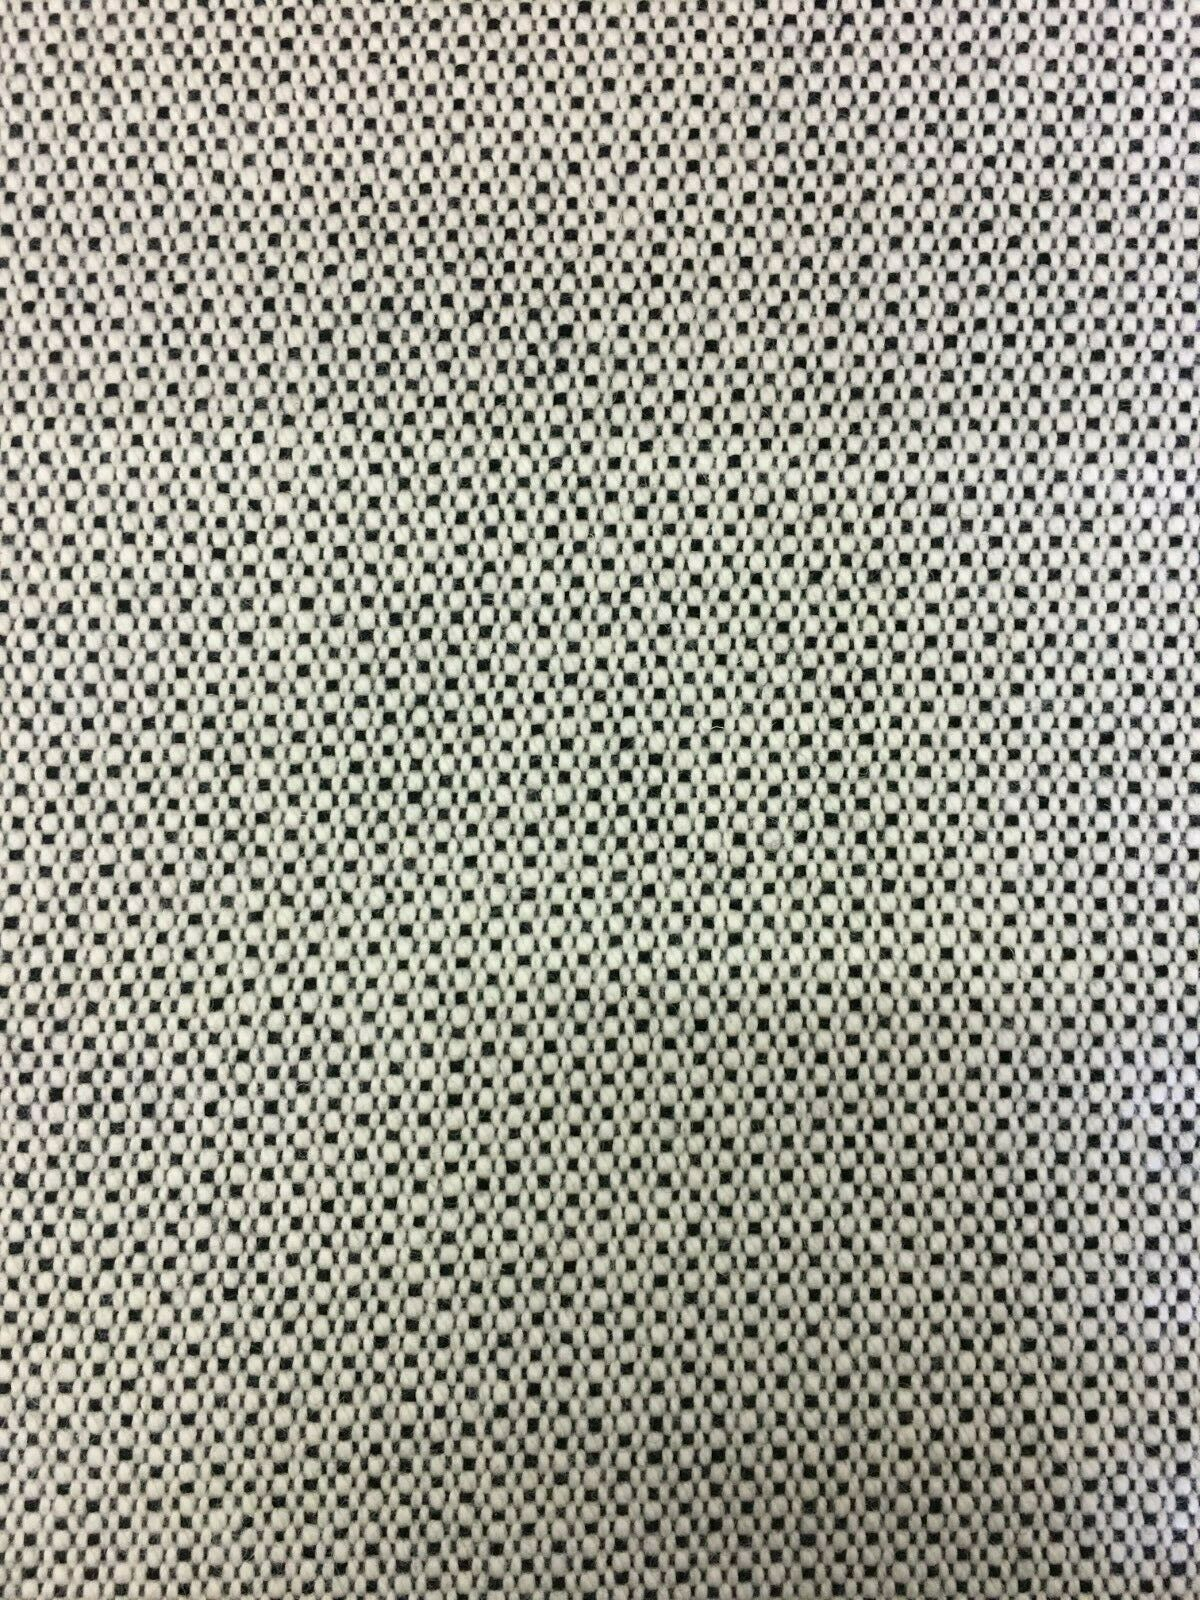 Maharam Upholstery Fabric Lanalux by Girard Natural Black 466240-007 4.375 yds